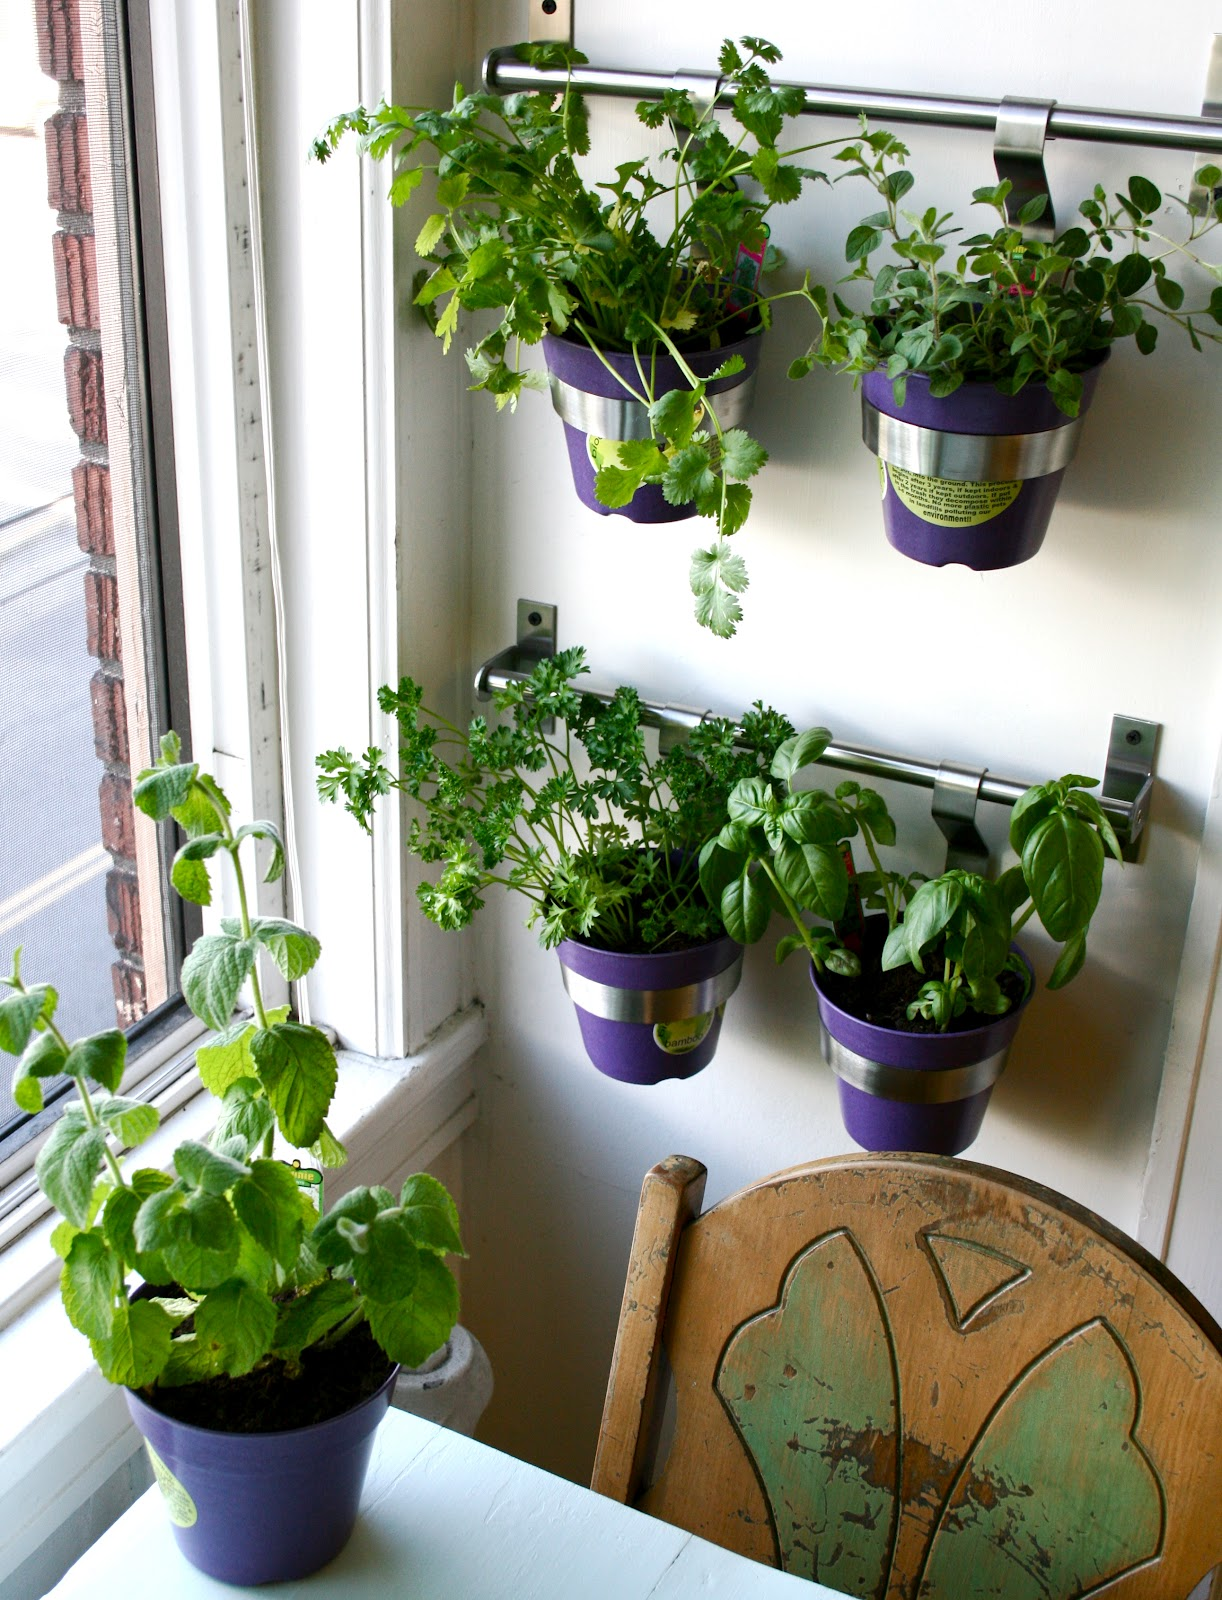 The good life diy herb wall in the kitchen Indoor living wall herb garden